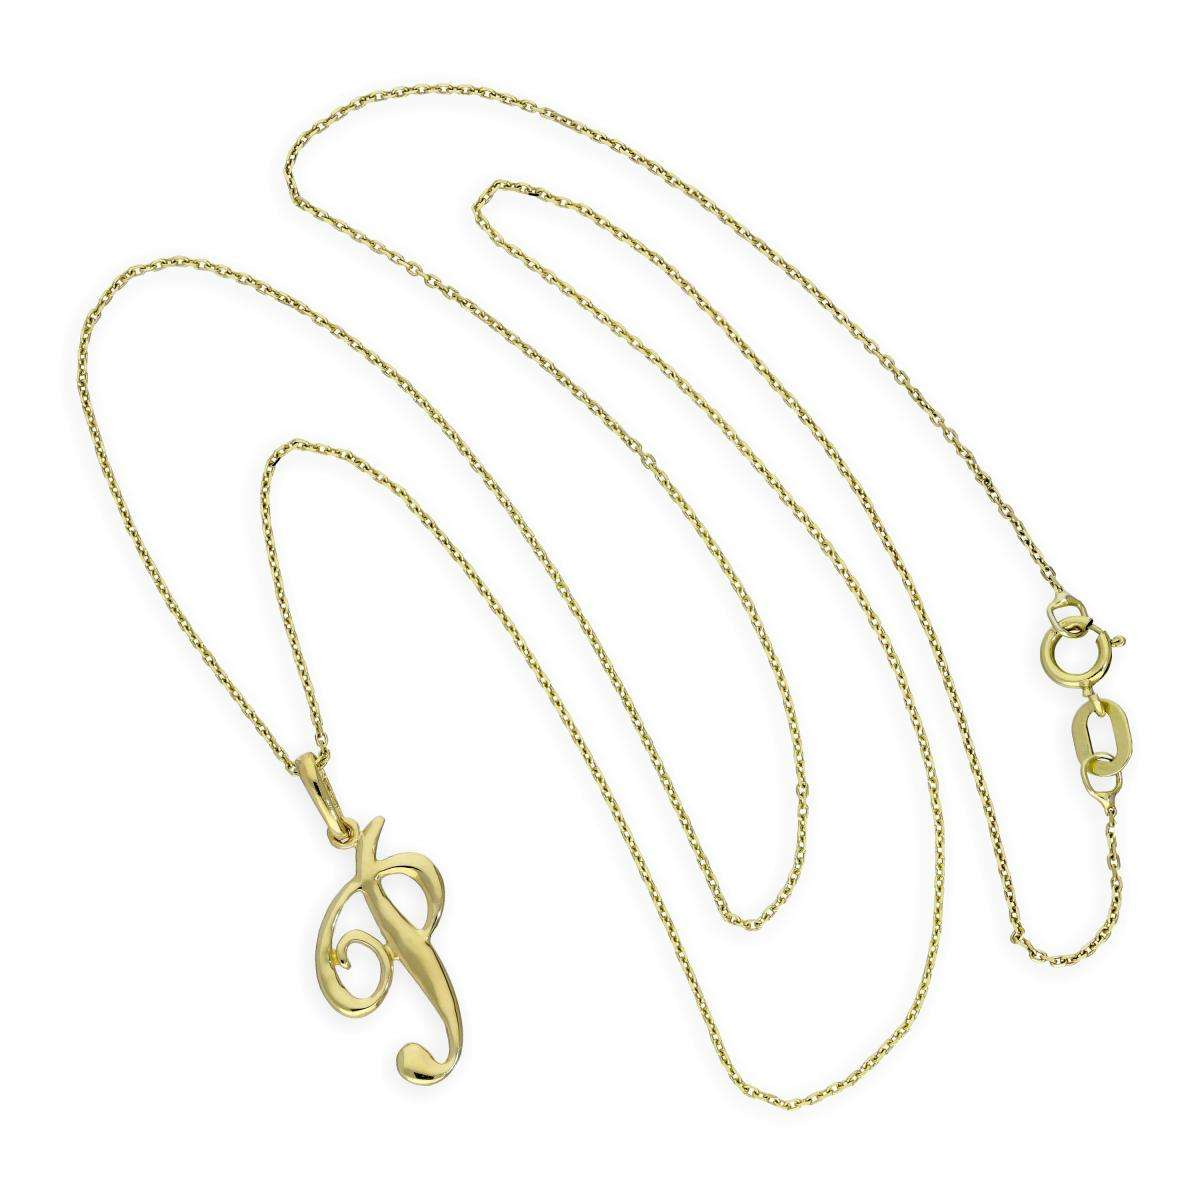 Alterative image for 9ct Gold Fancy Calligraphy Script Letter P Pendant Necklace 16 - 20 Inches